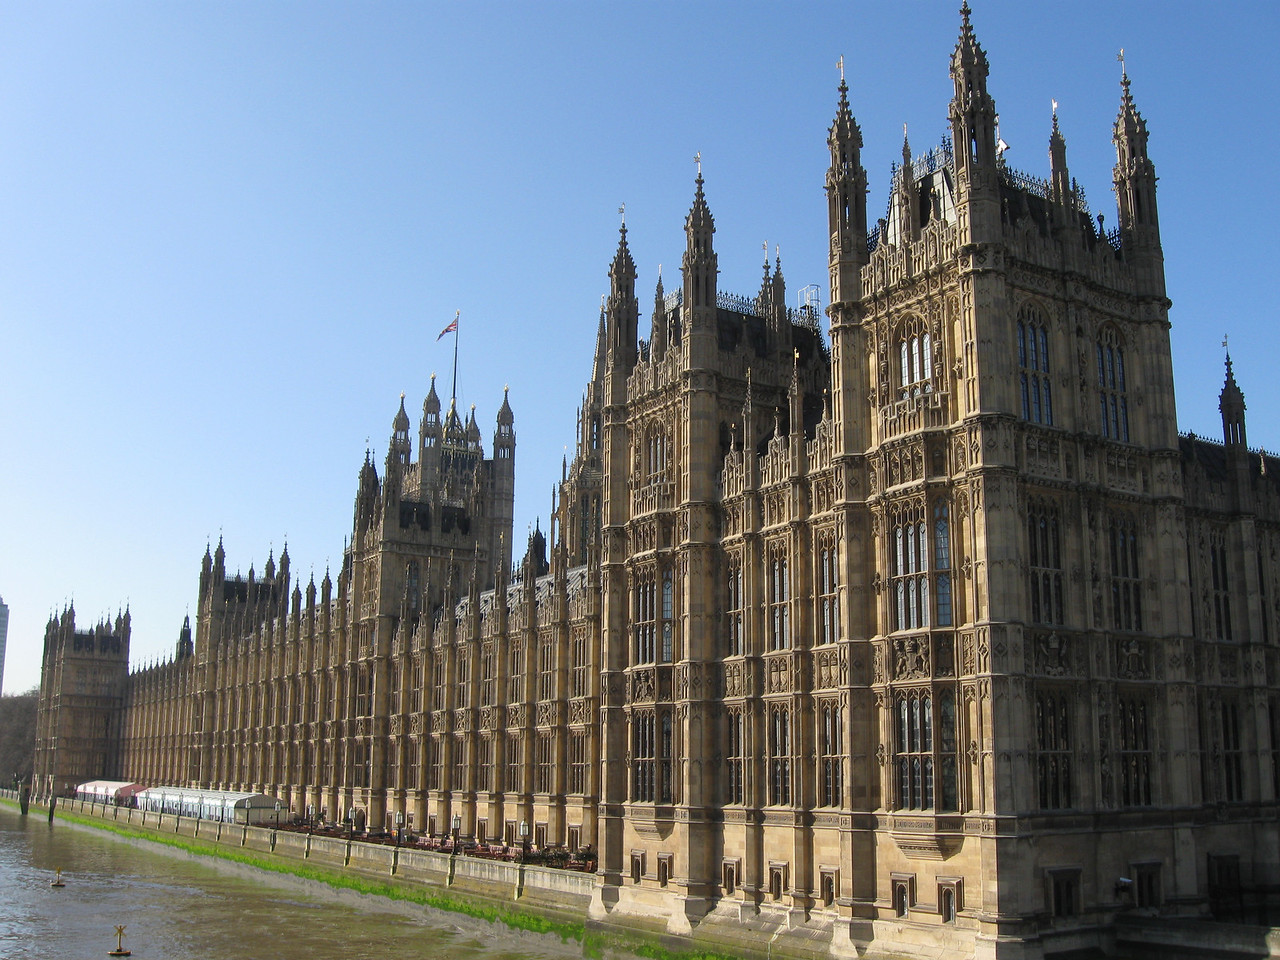 The  Houses of Parliment building along the Thames River in London, England. Also, referred to as Palace of Westminster or Westminster Palace.